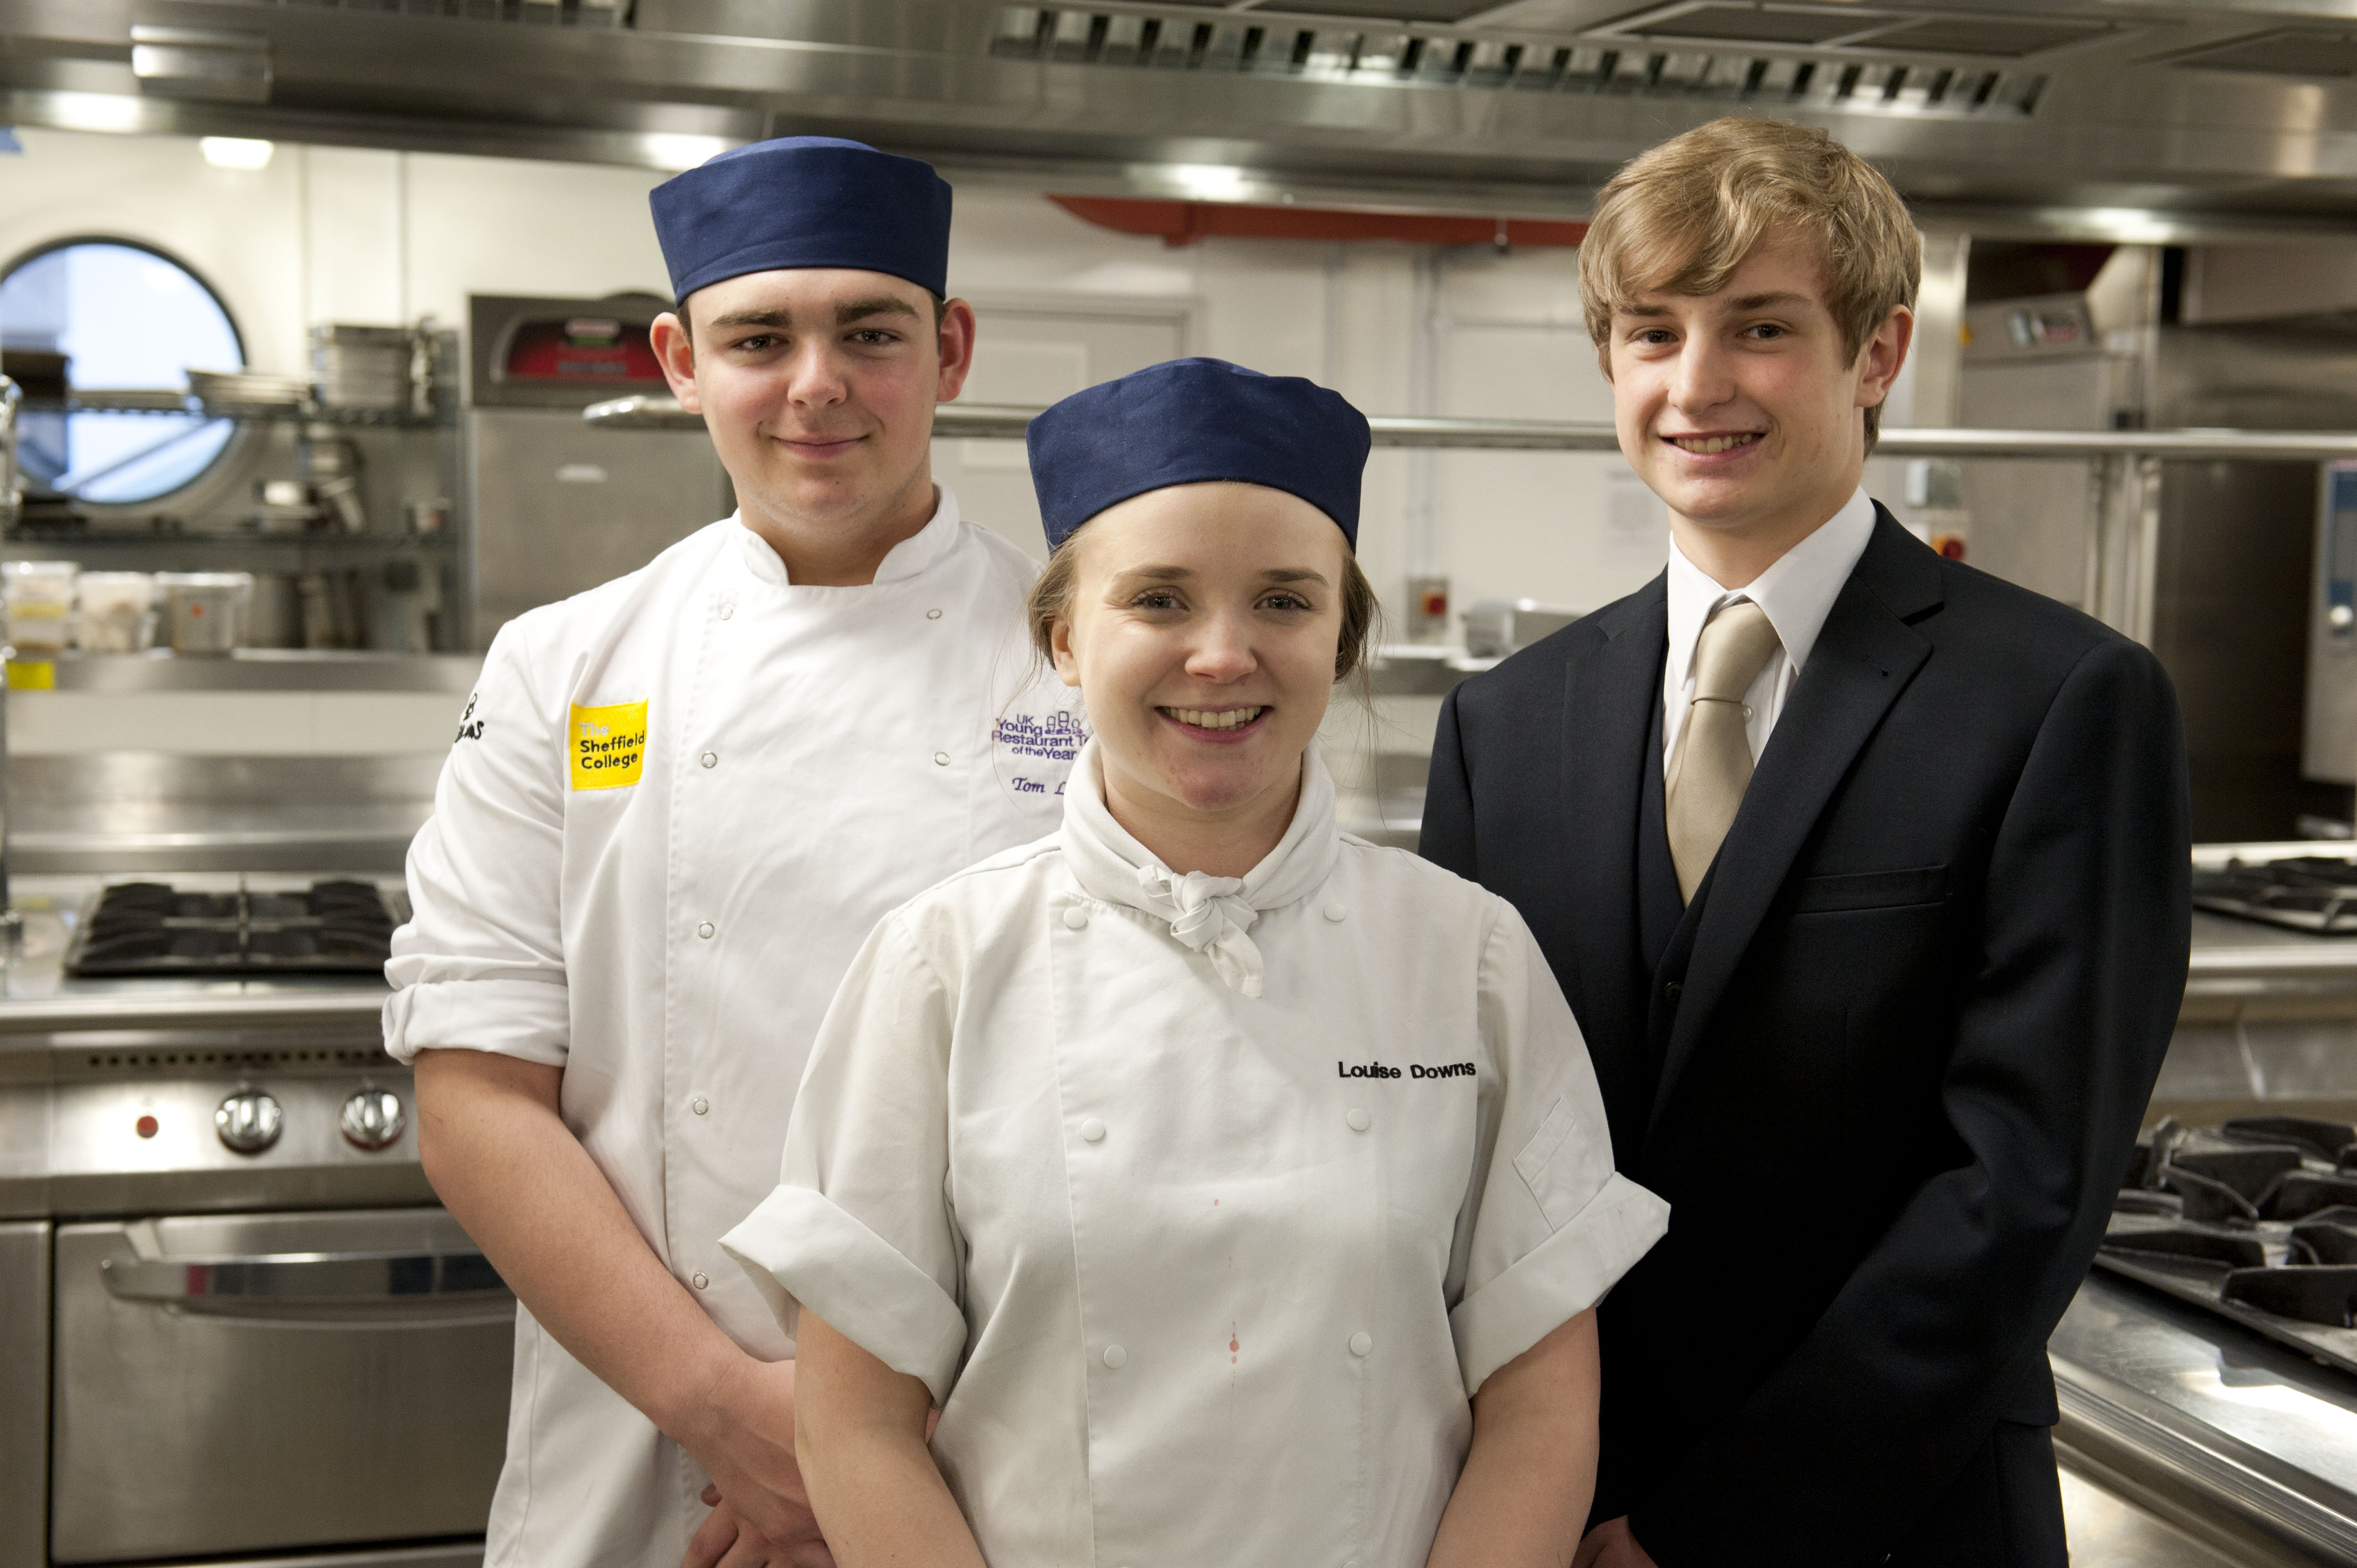 Sheffield College Wins UK Young Restaurant Team of the Year